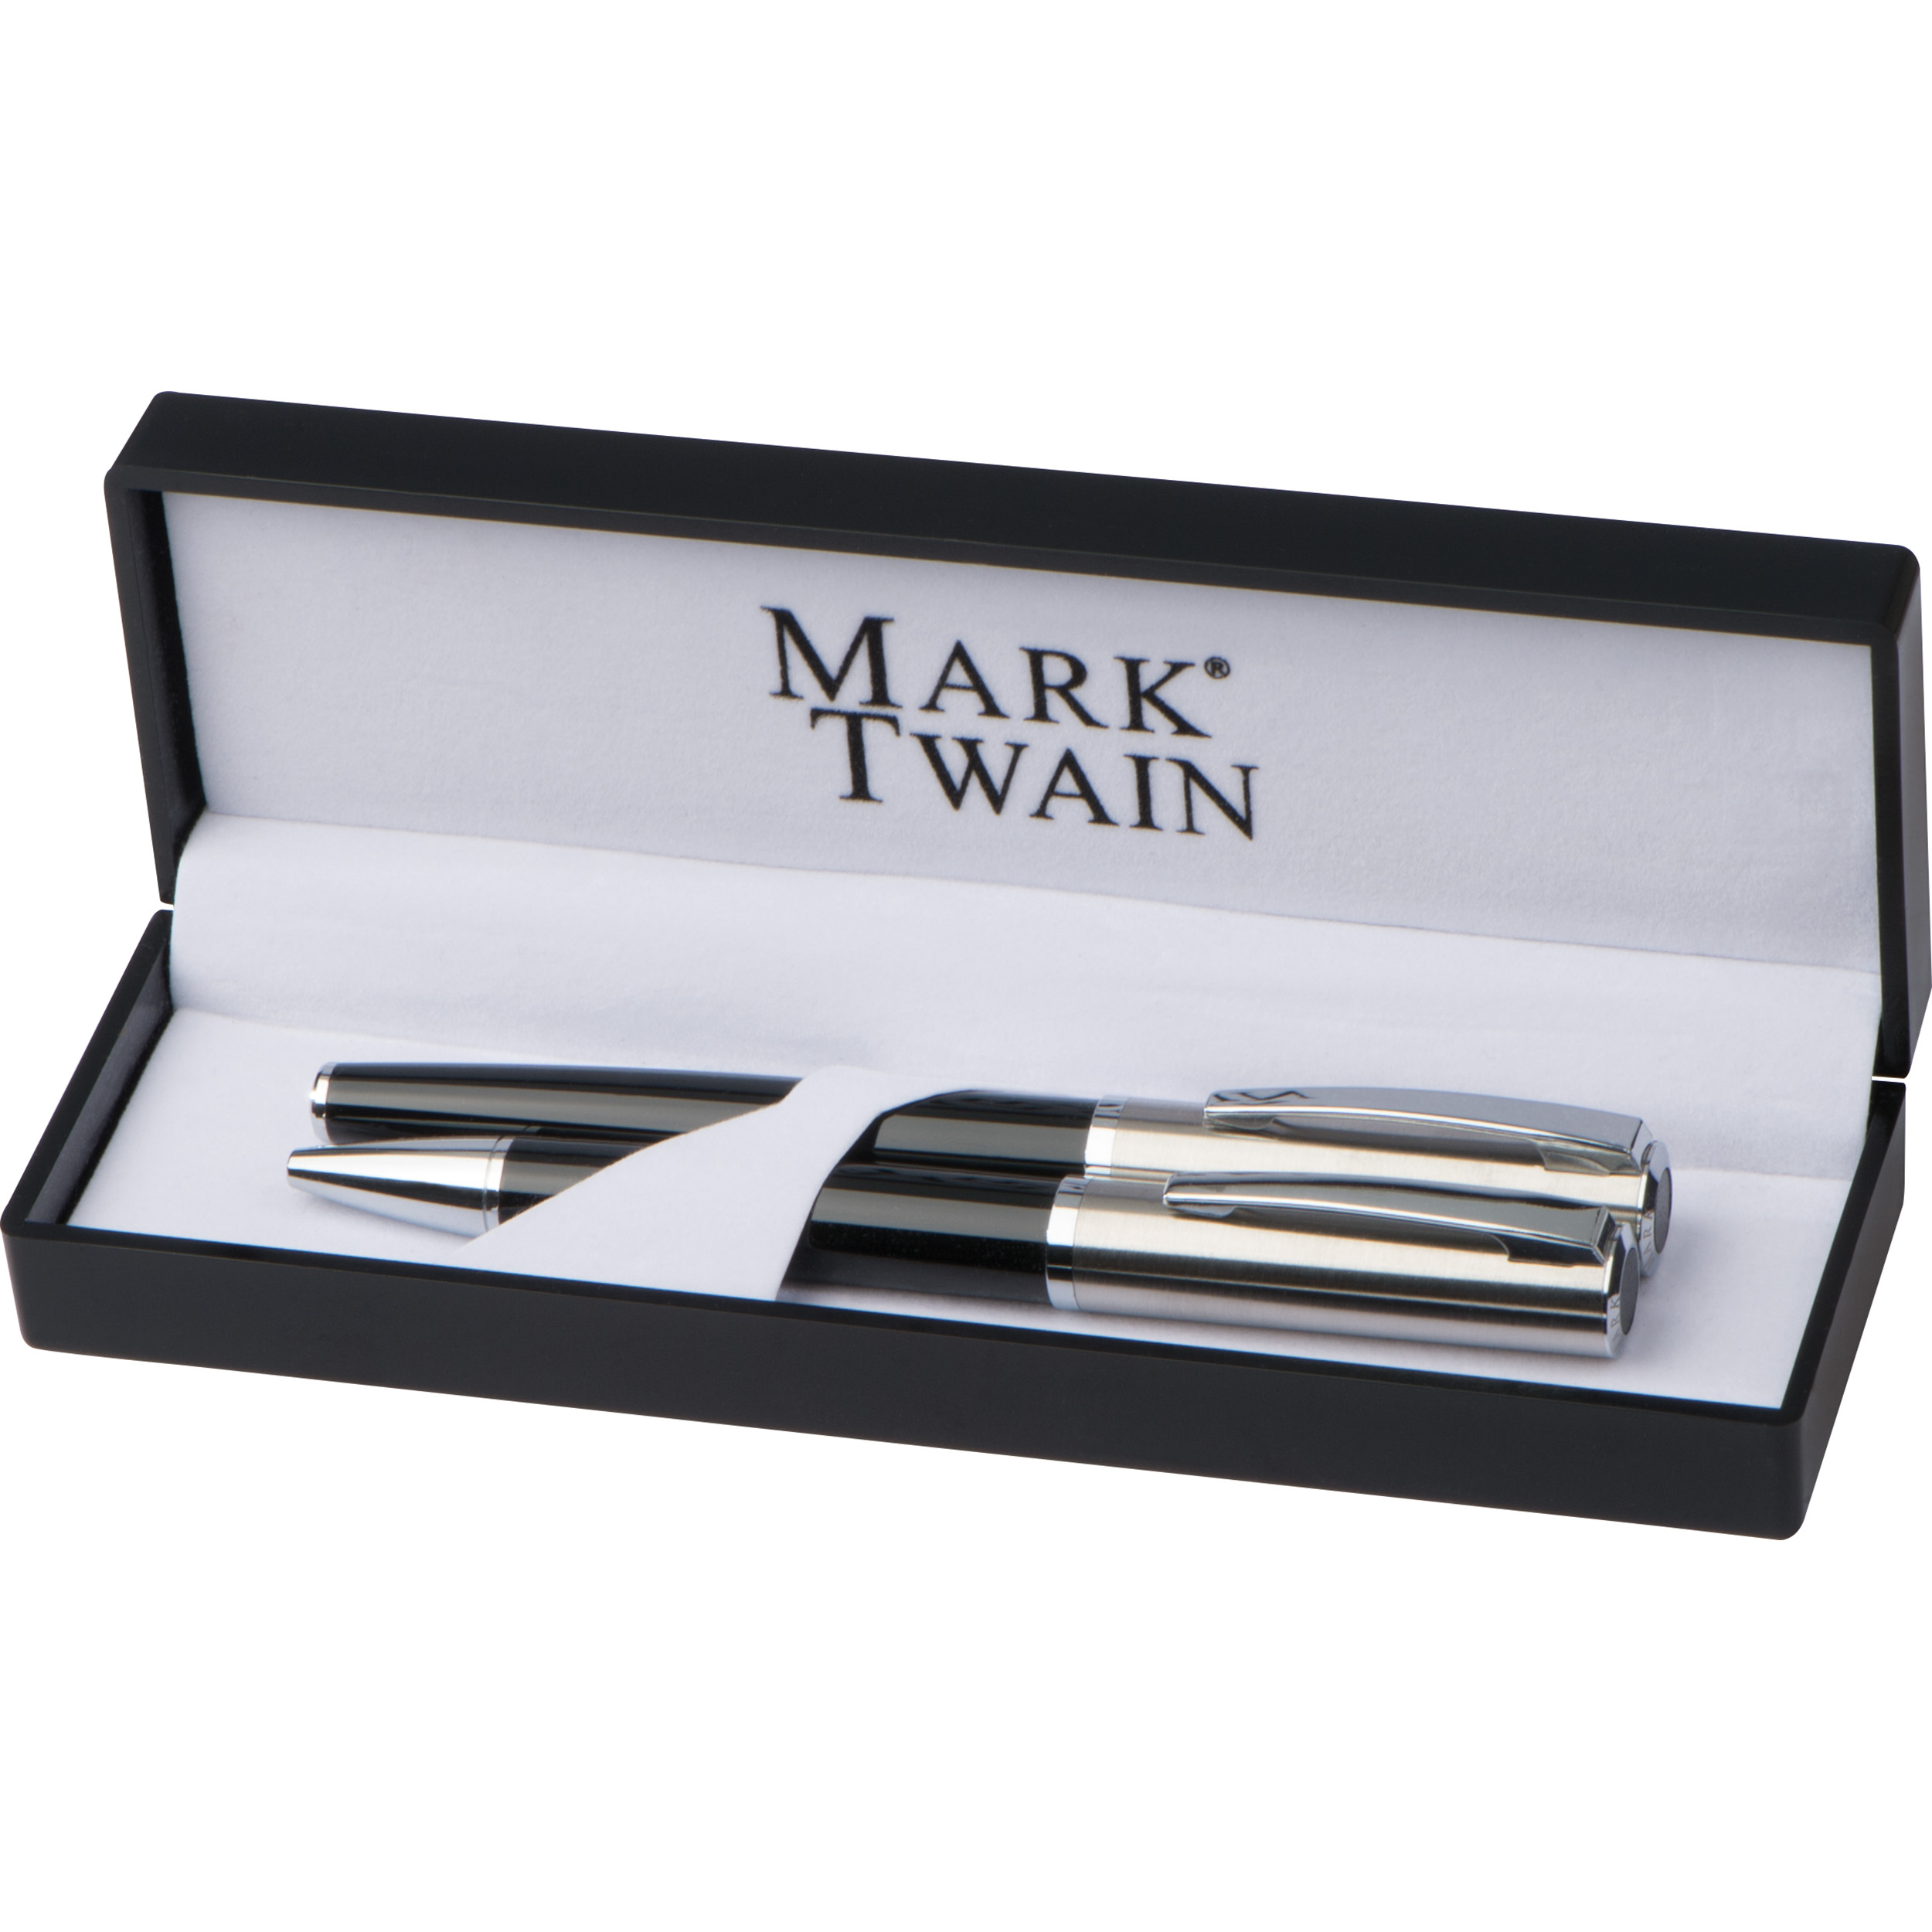 Mark Twain writing set with ball pen and rollerball pen